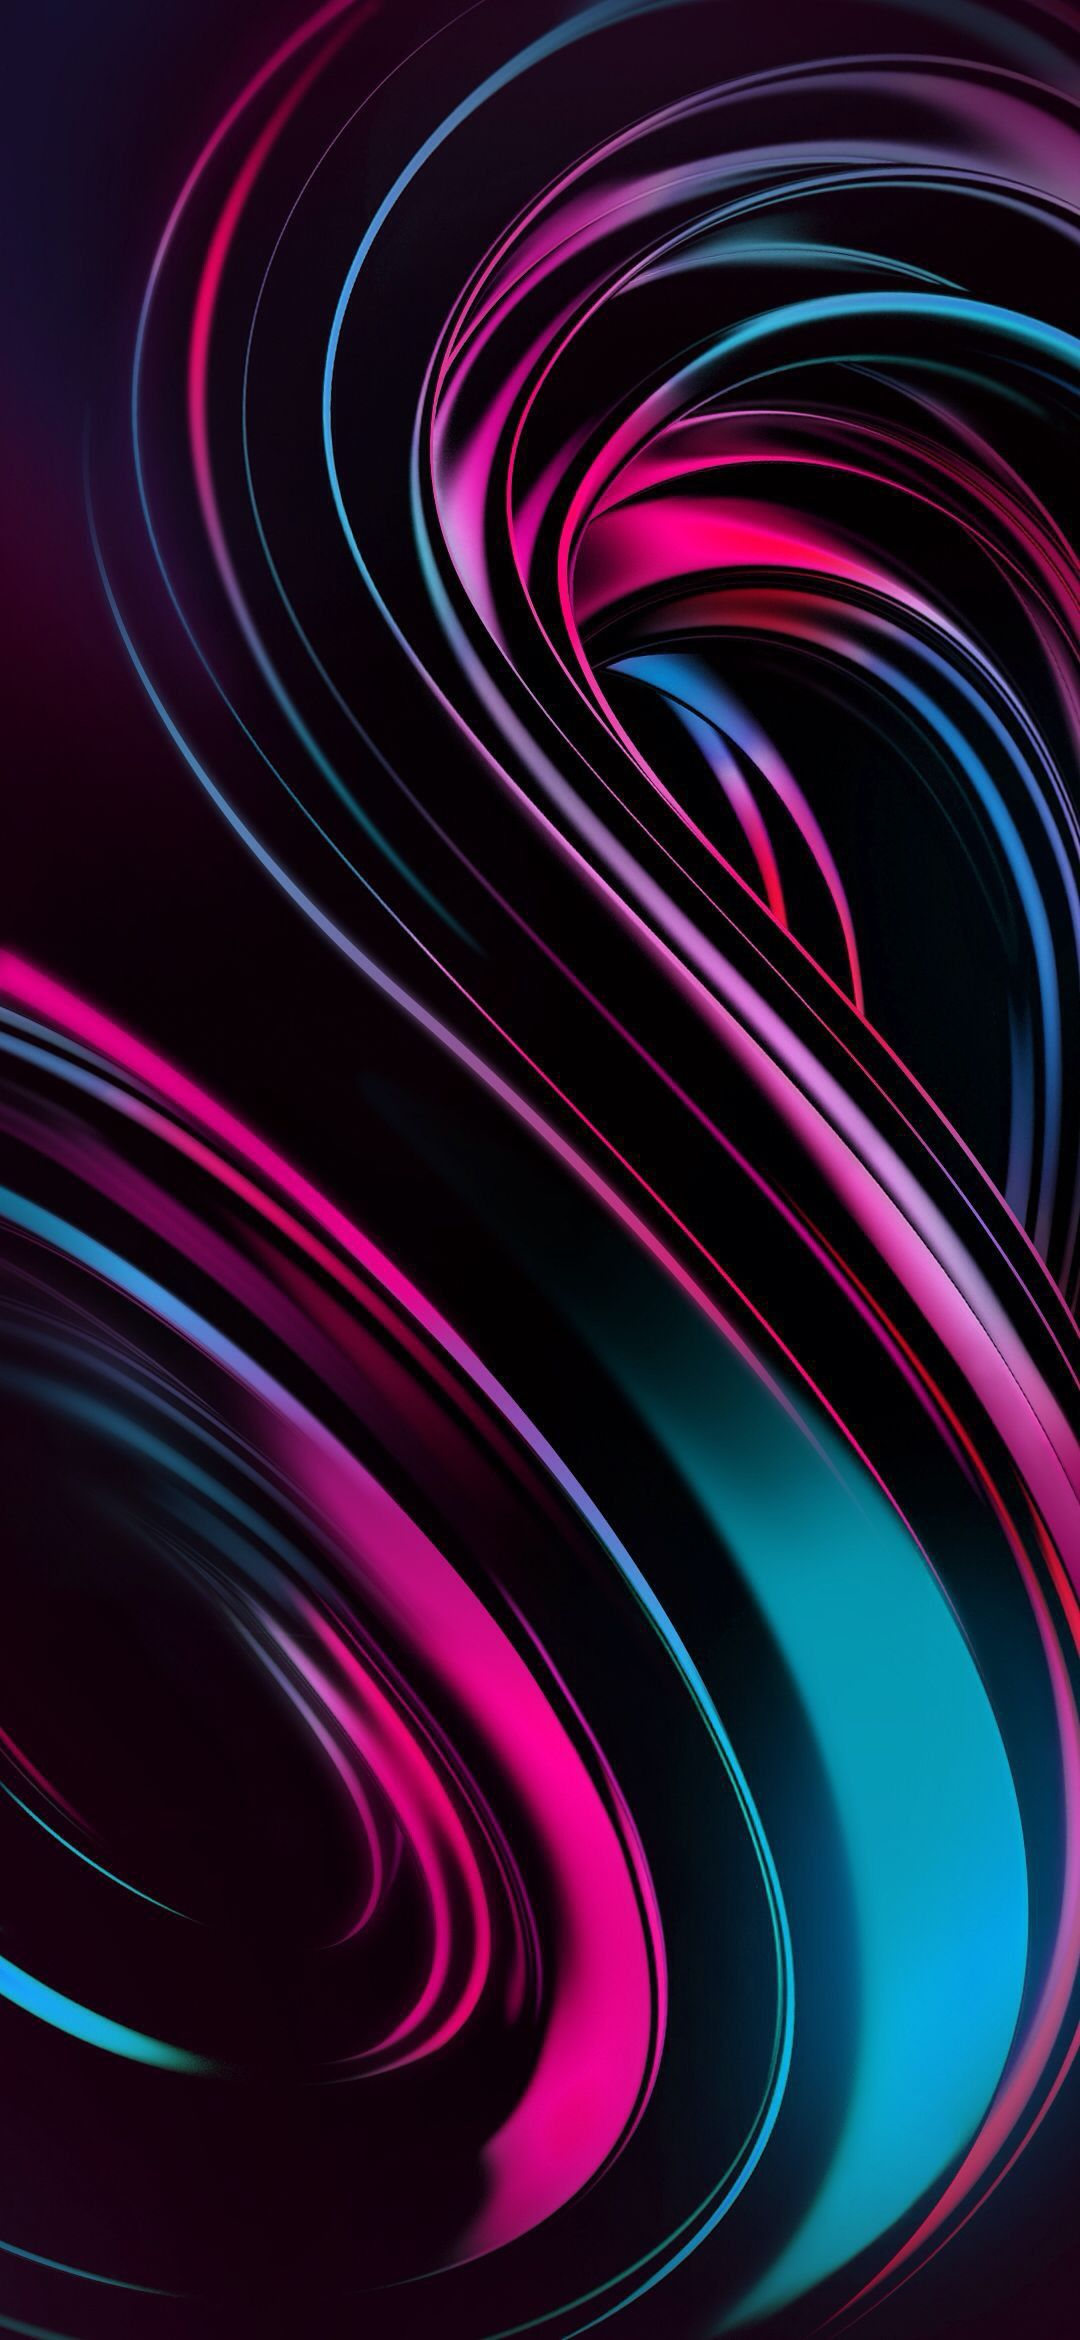 Pin By Stacia On Background Galore Abstract Iphone Wallpaper 3d